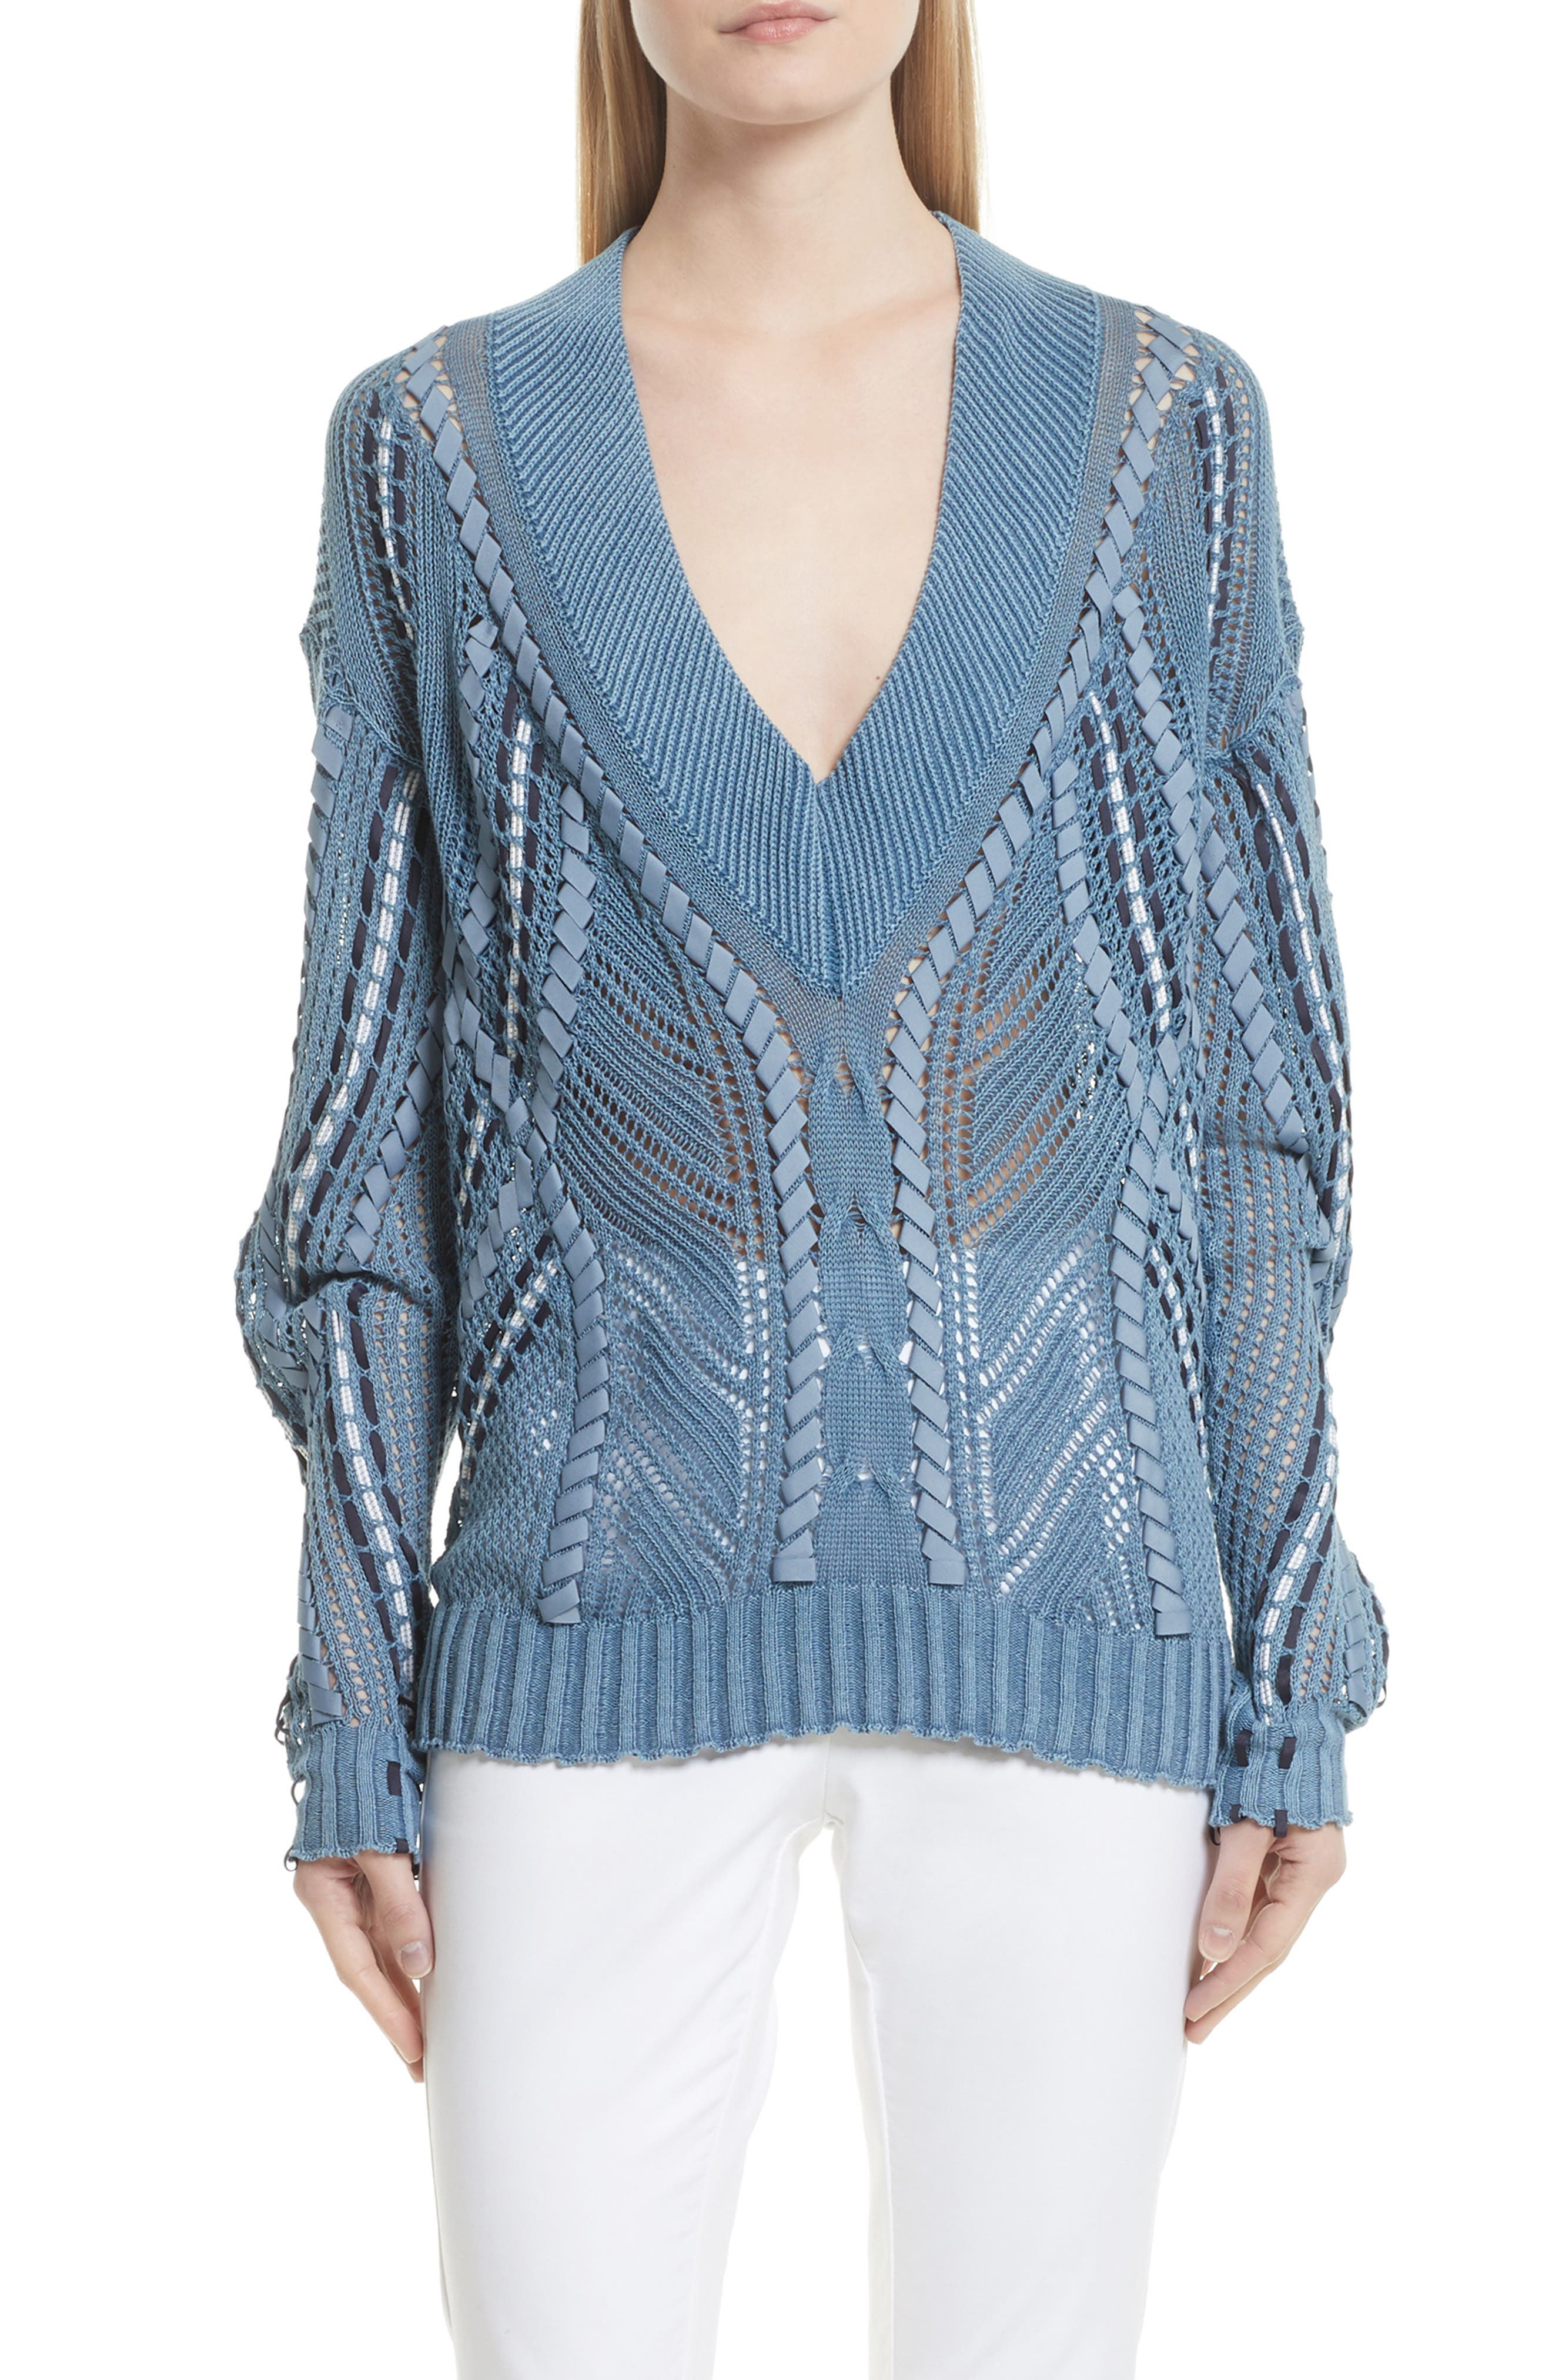 Main Image - rag & bone Lucie Pointelle Knit Cotton Blend Sweater